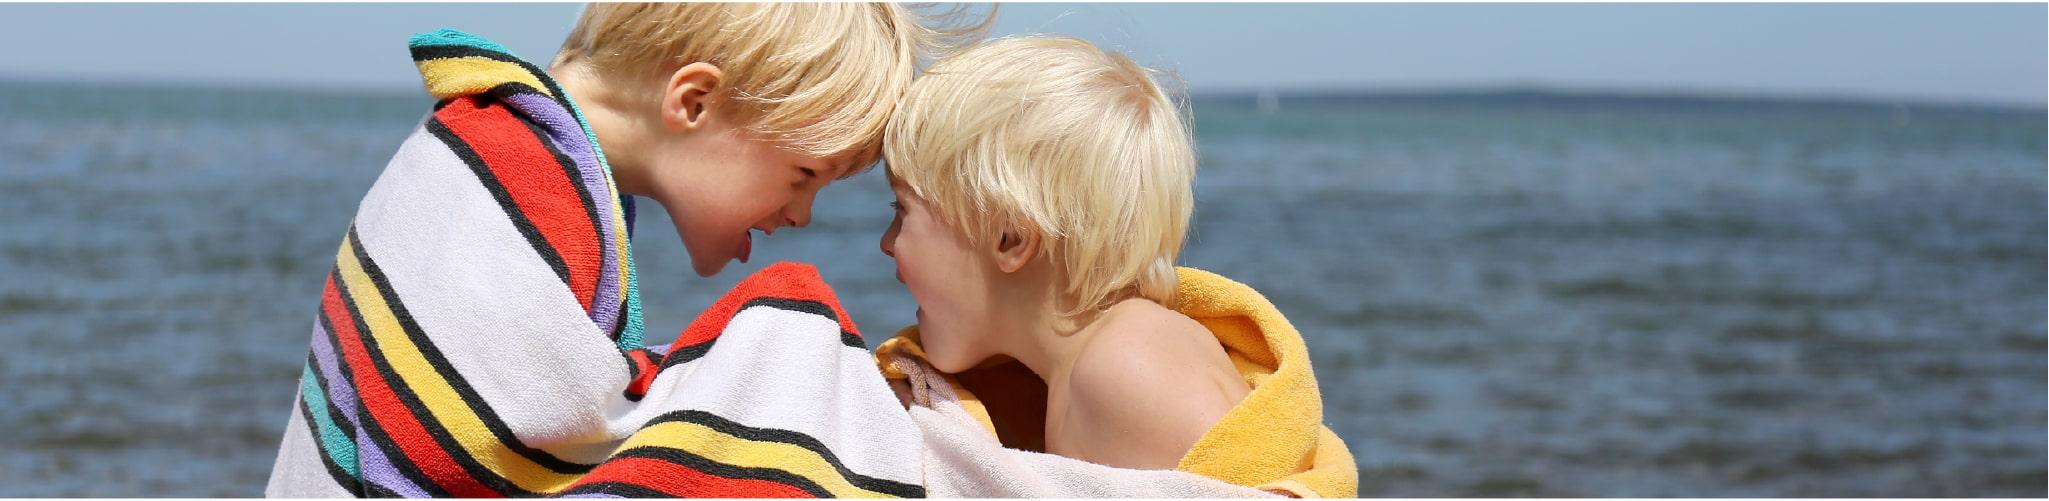 Two blonde boys playing in beach towels near the sea